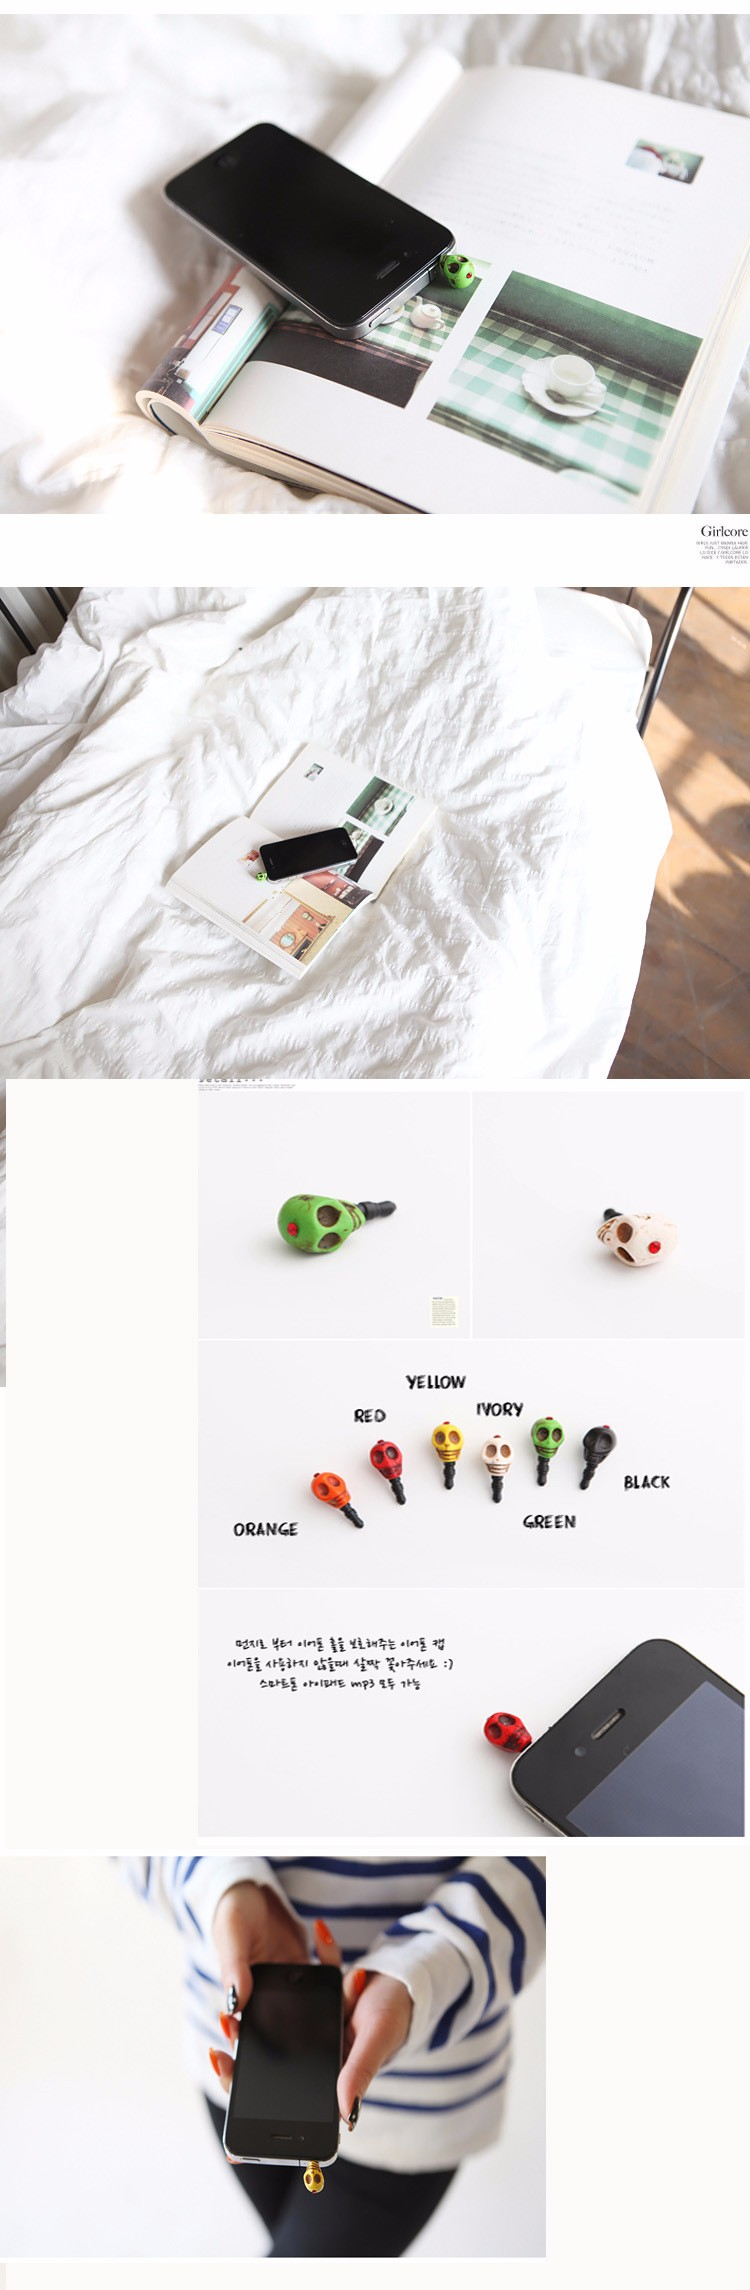 DHL Skull Punk Ghost 3.5mm Jack Anti Dust Plug for Samsung IPHONE xiaomi huawei htc Cell Phone Accessories Plugs Halloween Gift